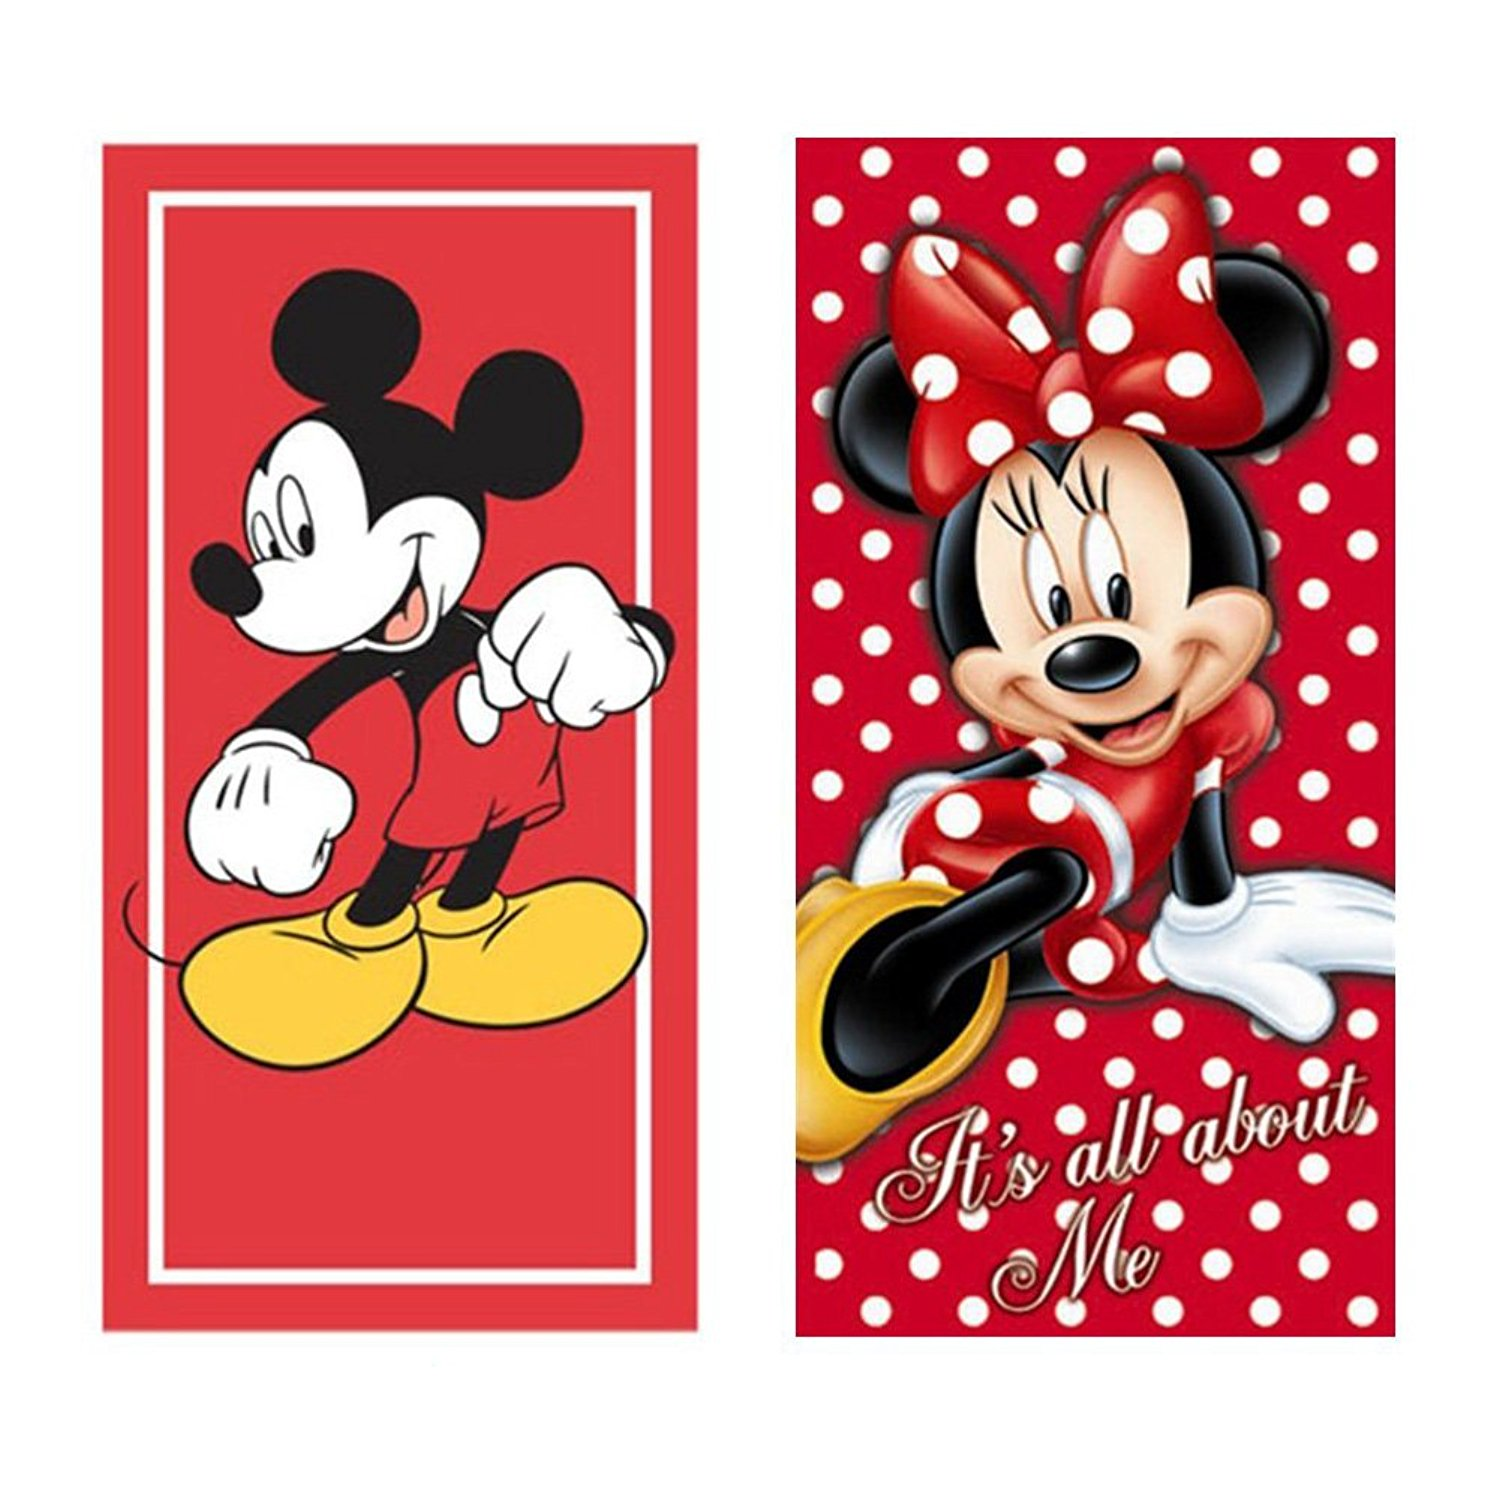 Disney Mickey Mouse & Minnie Mouse Beach Towels Printed Velour - 2 Pack Set